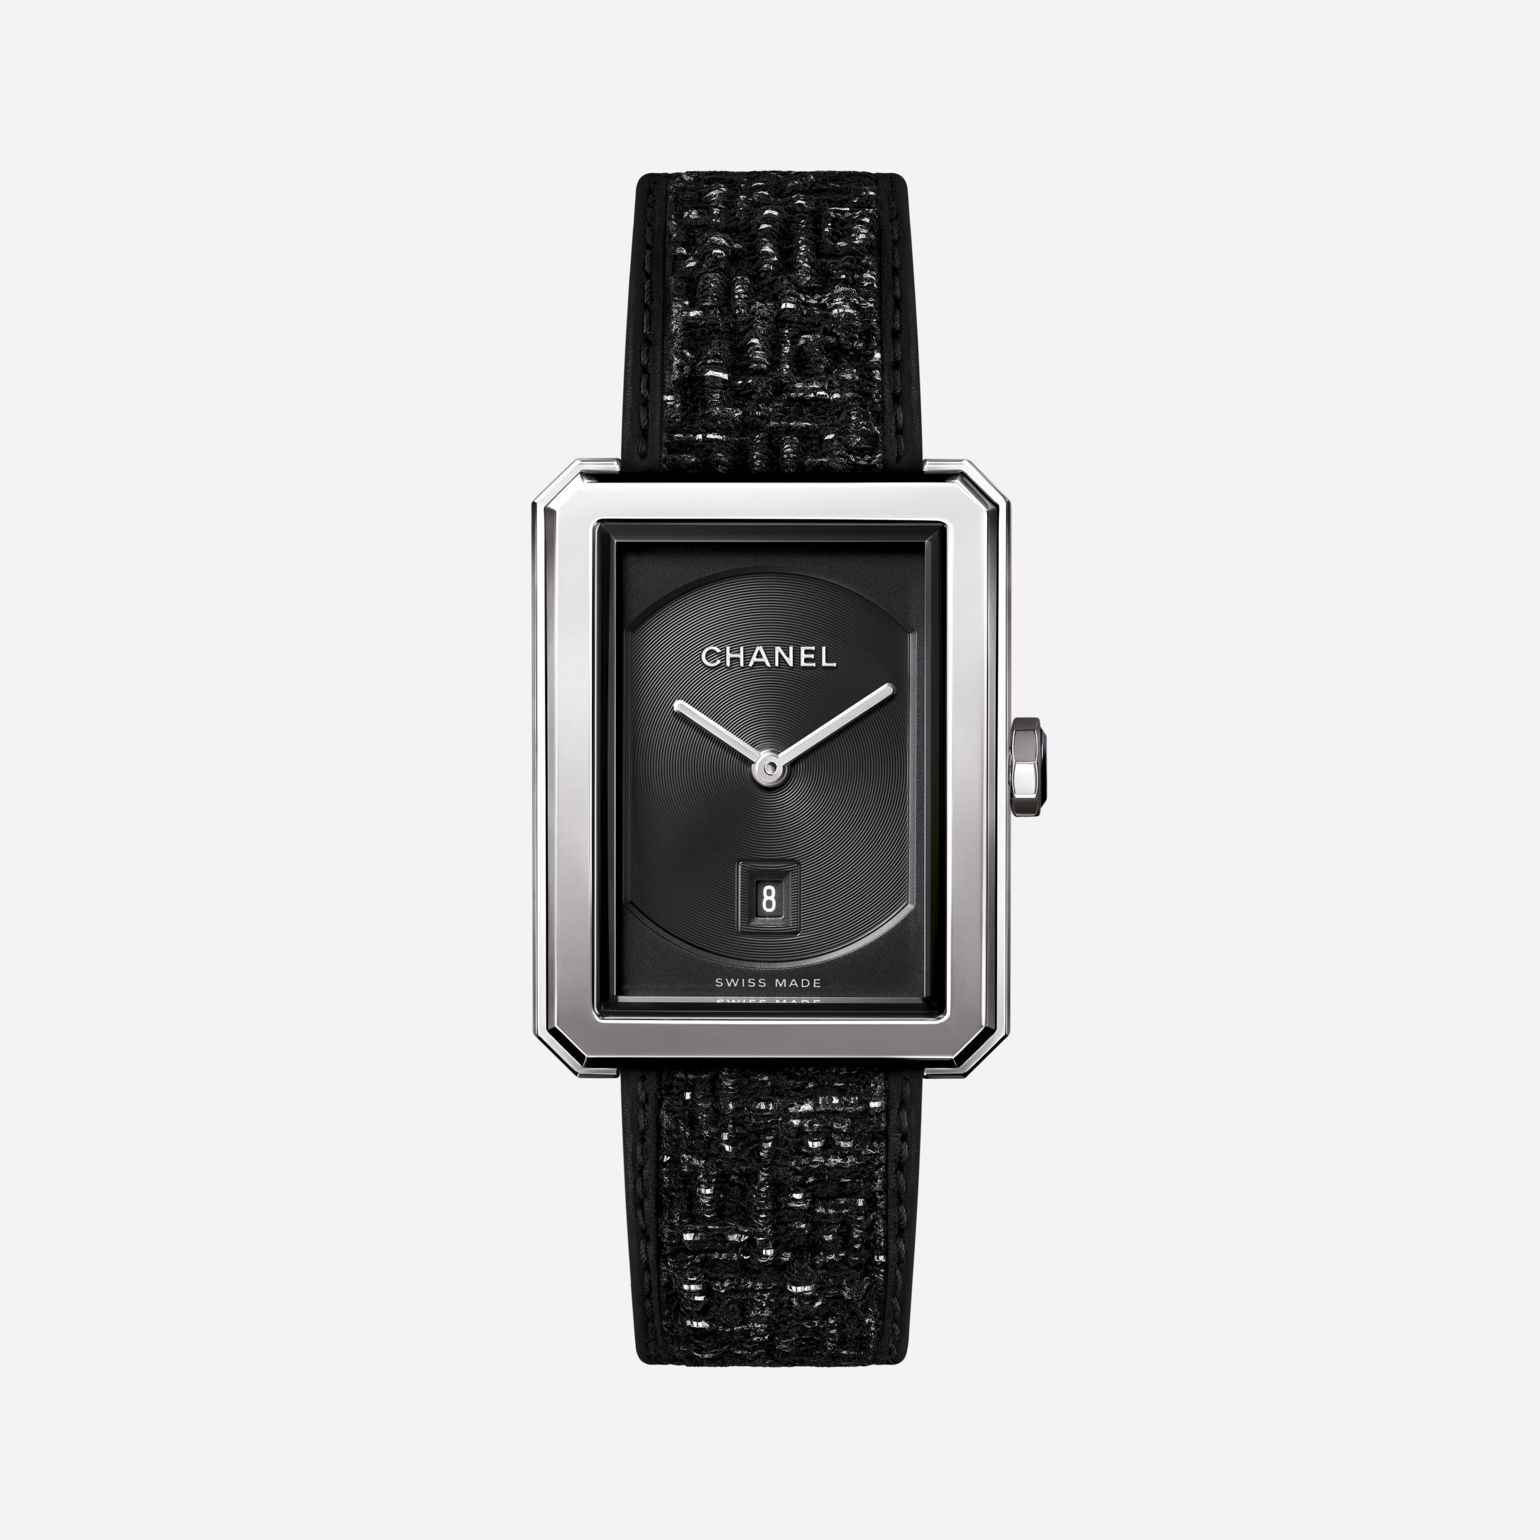 BOY·FRIEND TWEED Watch Medium version, steel, tweed fabric and leather strap